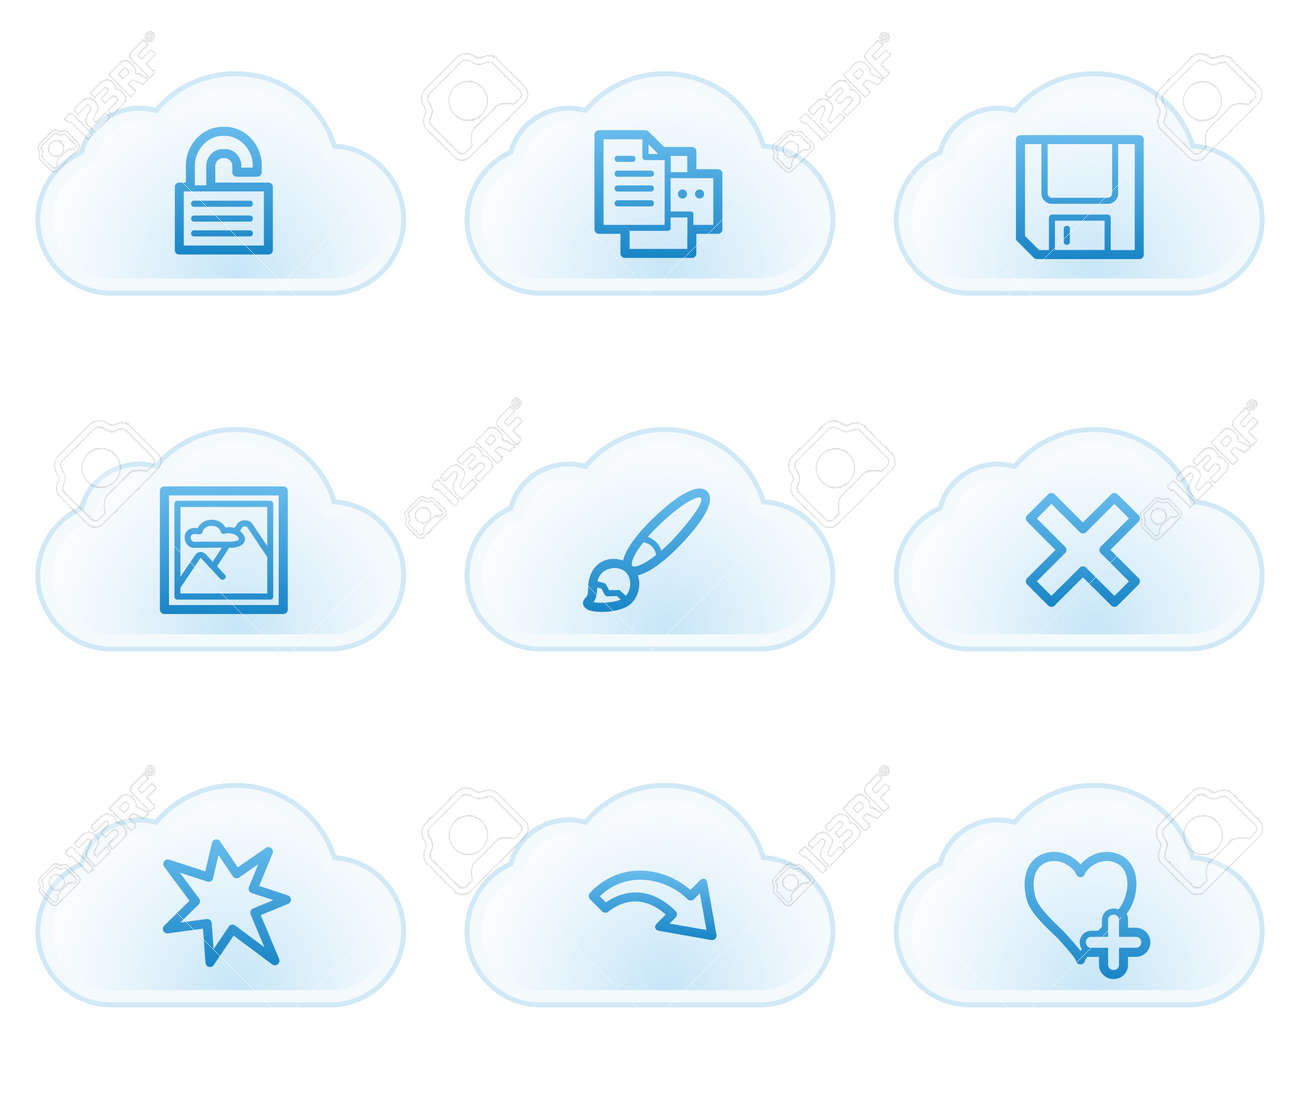 Image viewer web icons set 2, cloud buttons Stock Vector - 21702938